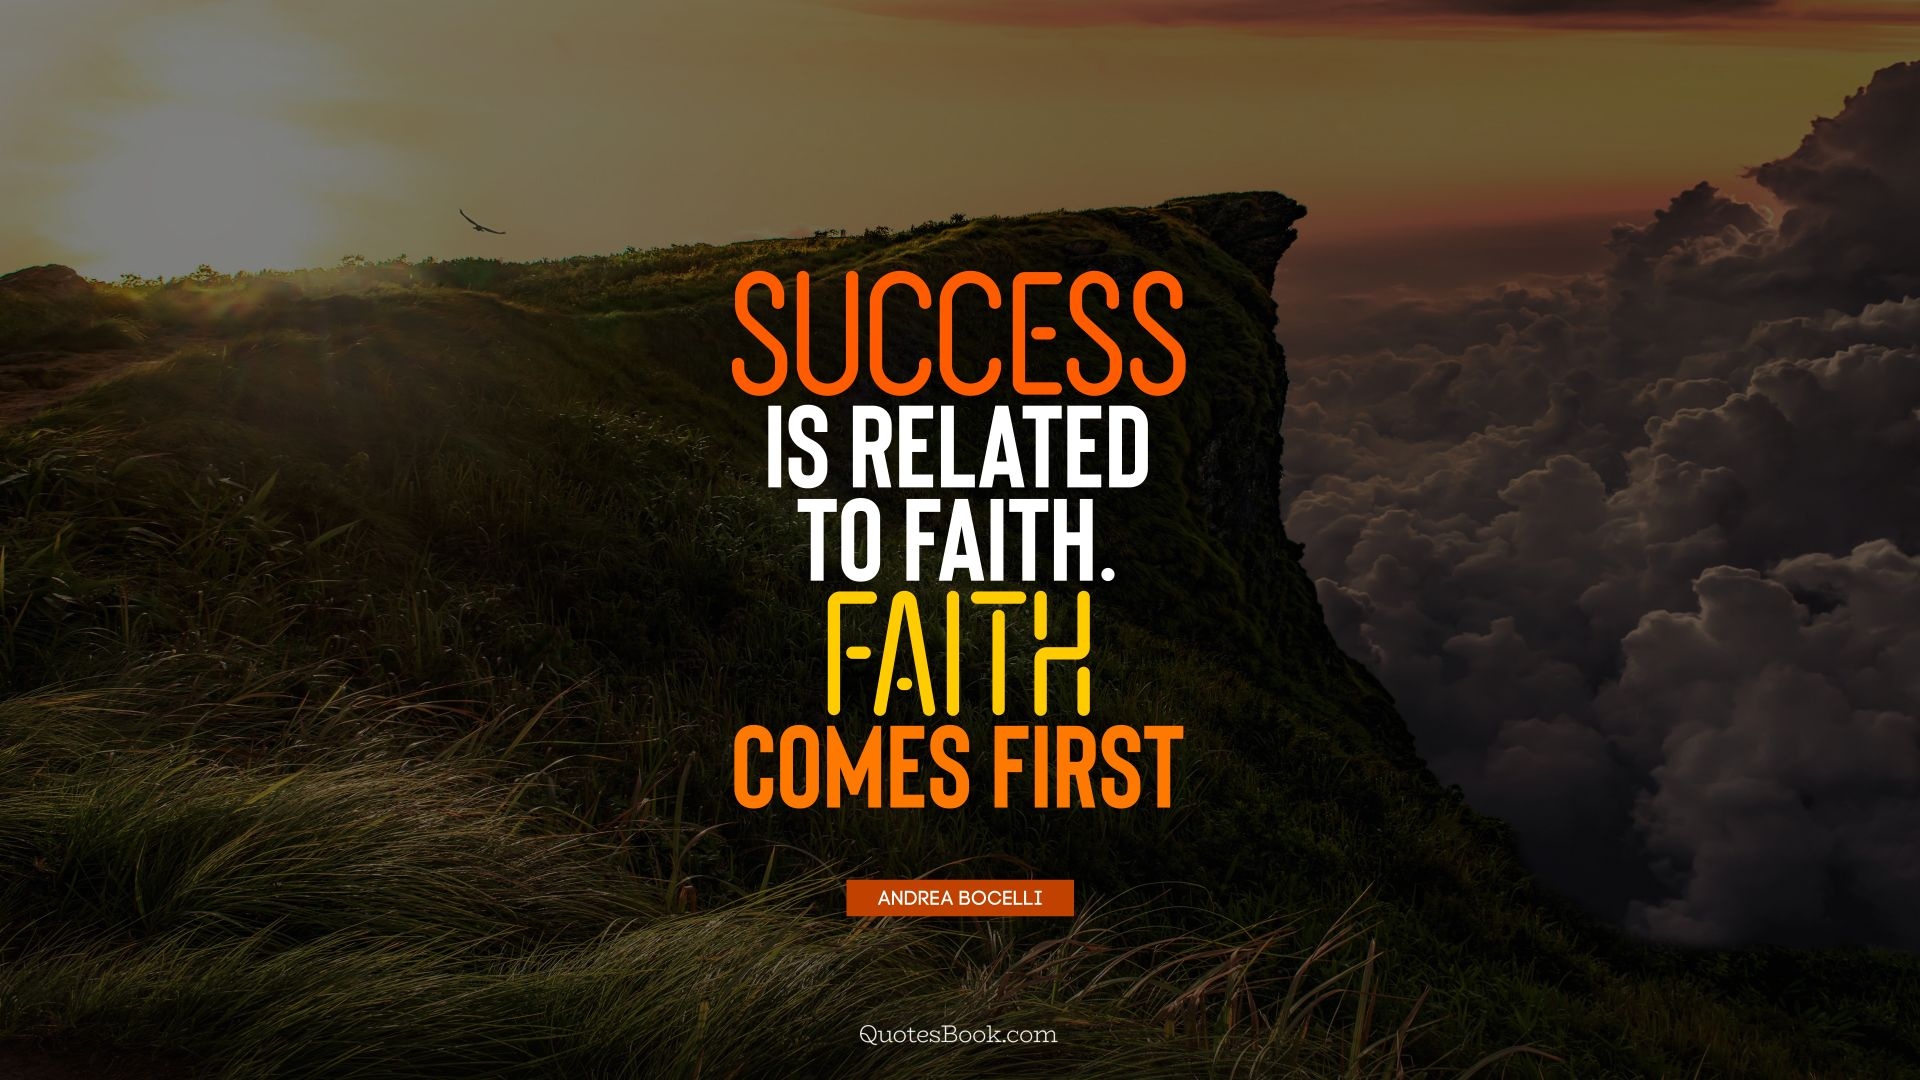 Success is related to faith. Faith comes first. - Quote by Andrea Bocelli